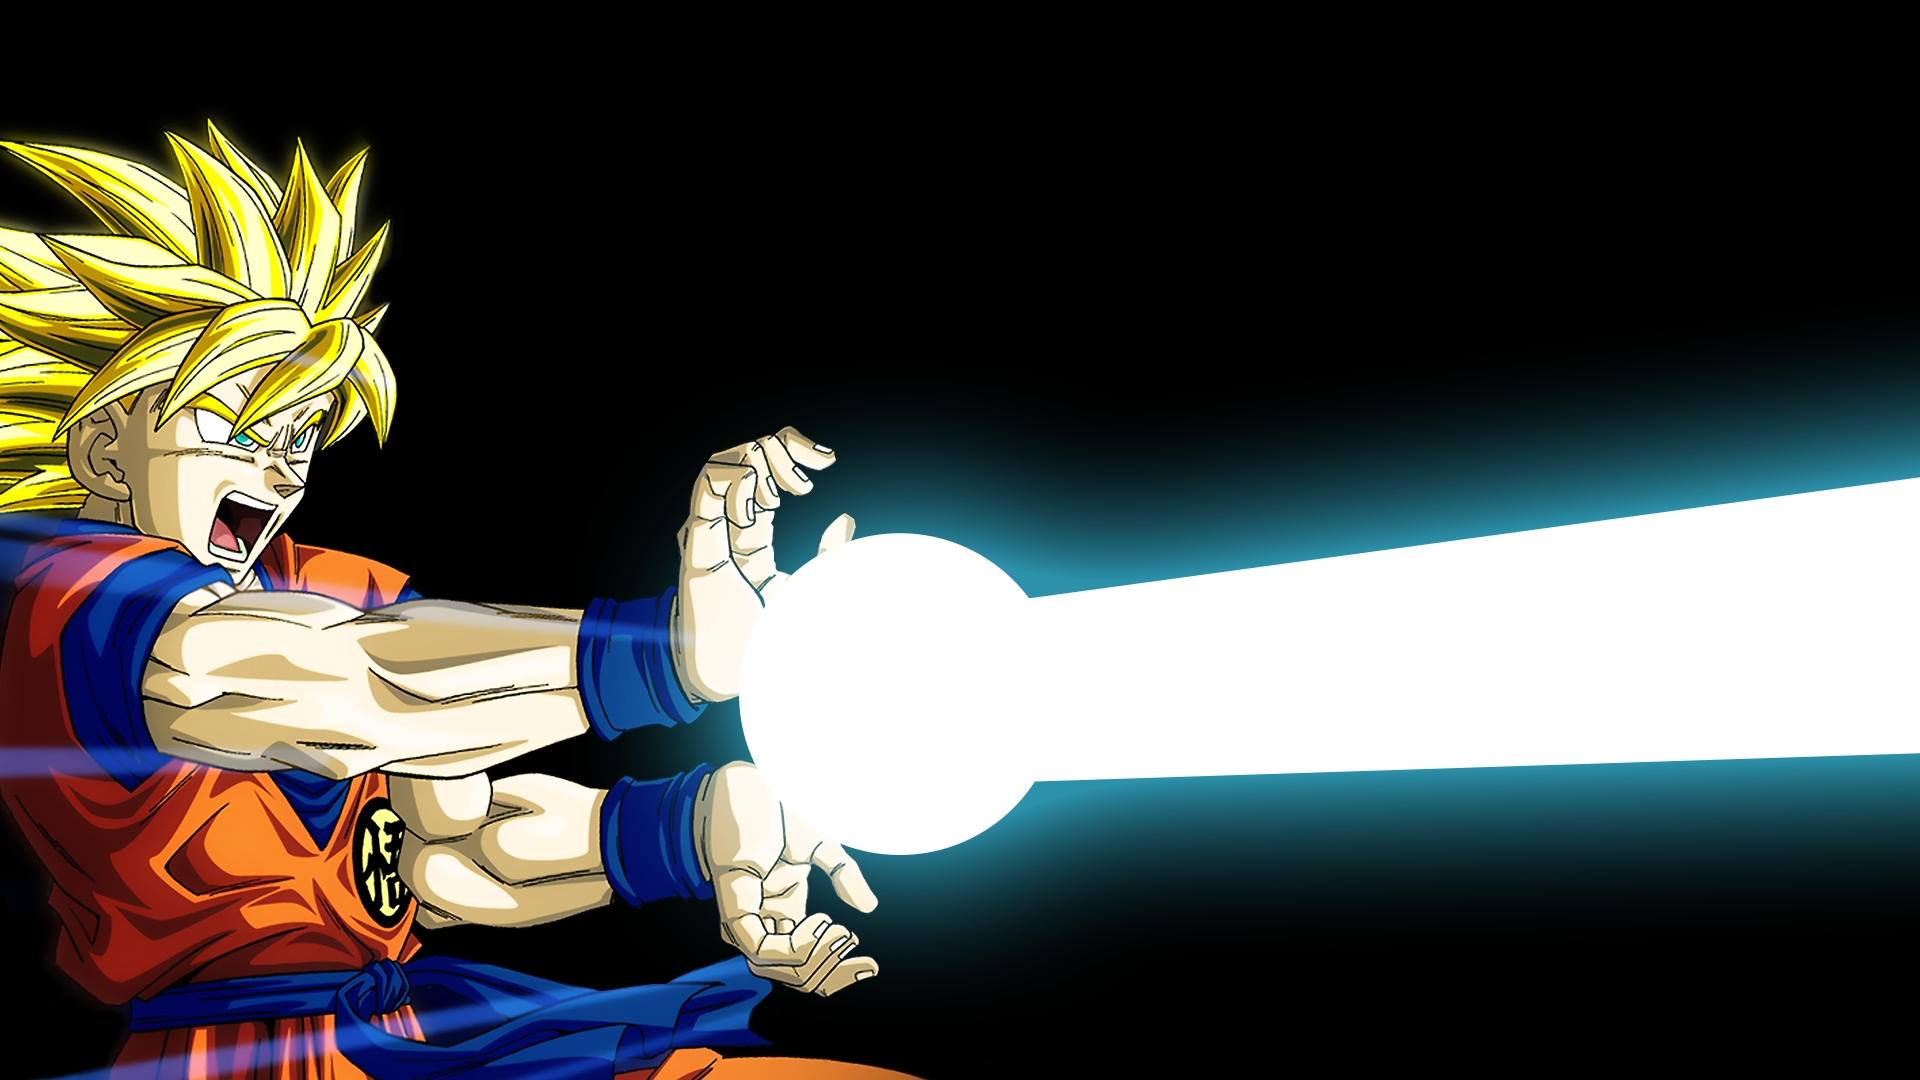 10 Latest Dragon Ball Z Wallpaper Kamehameha FULL HD 1080p For PC Background